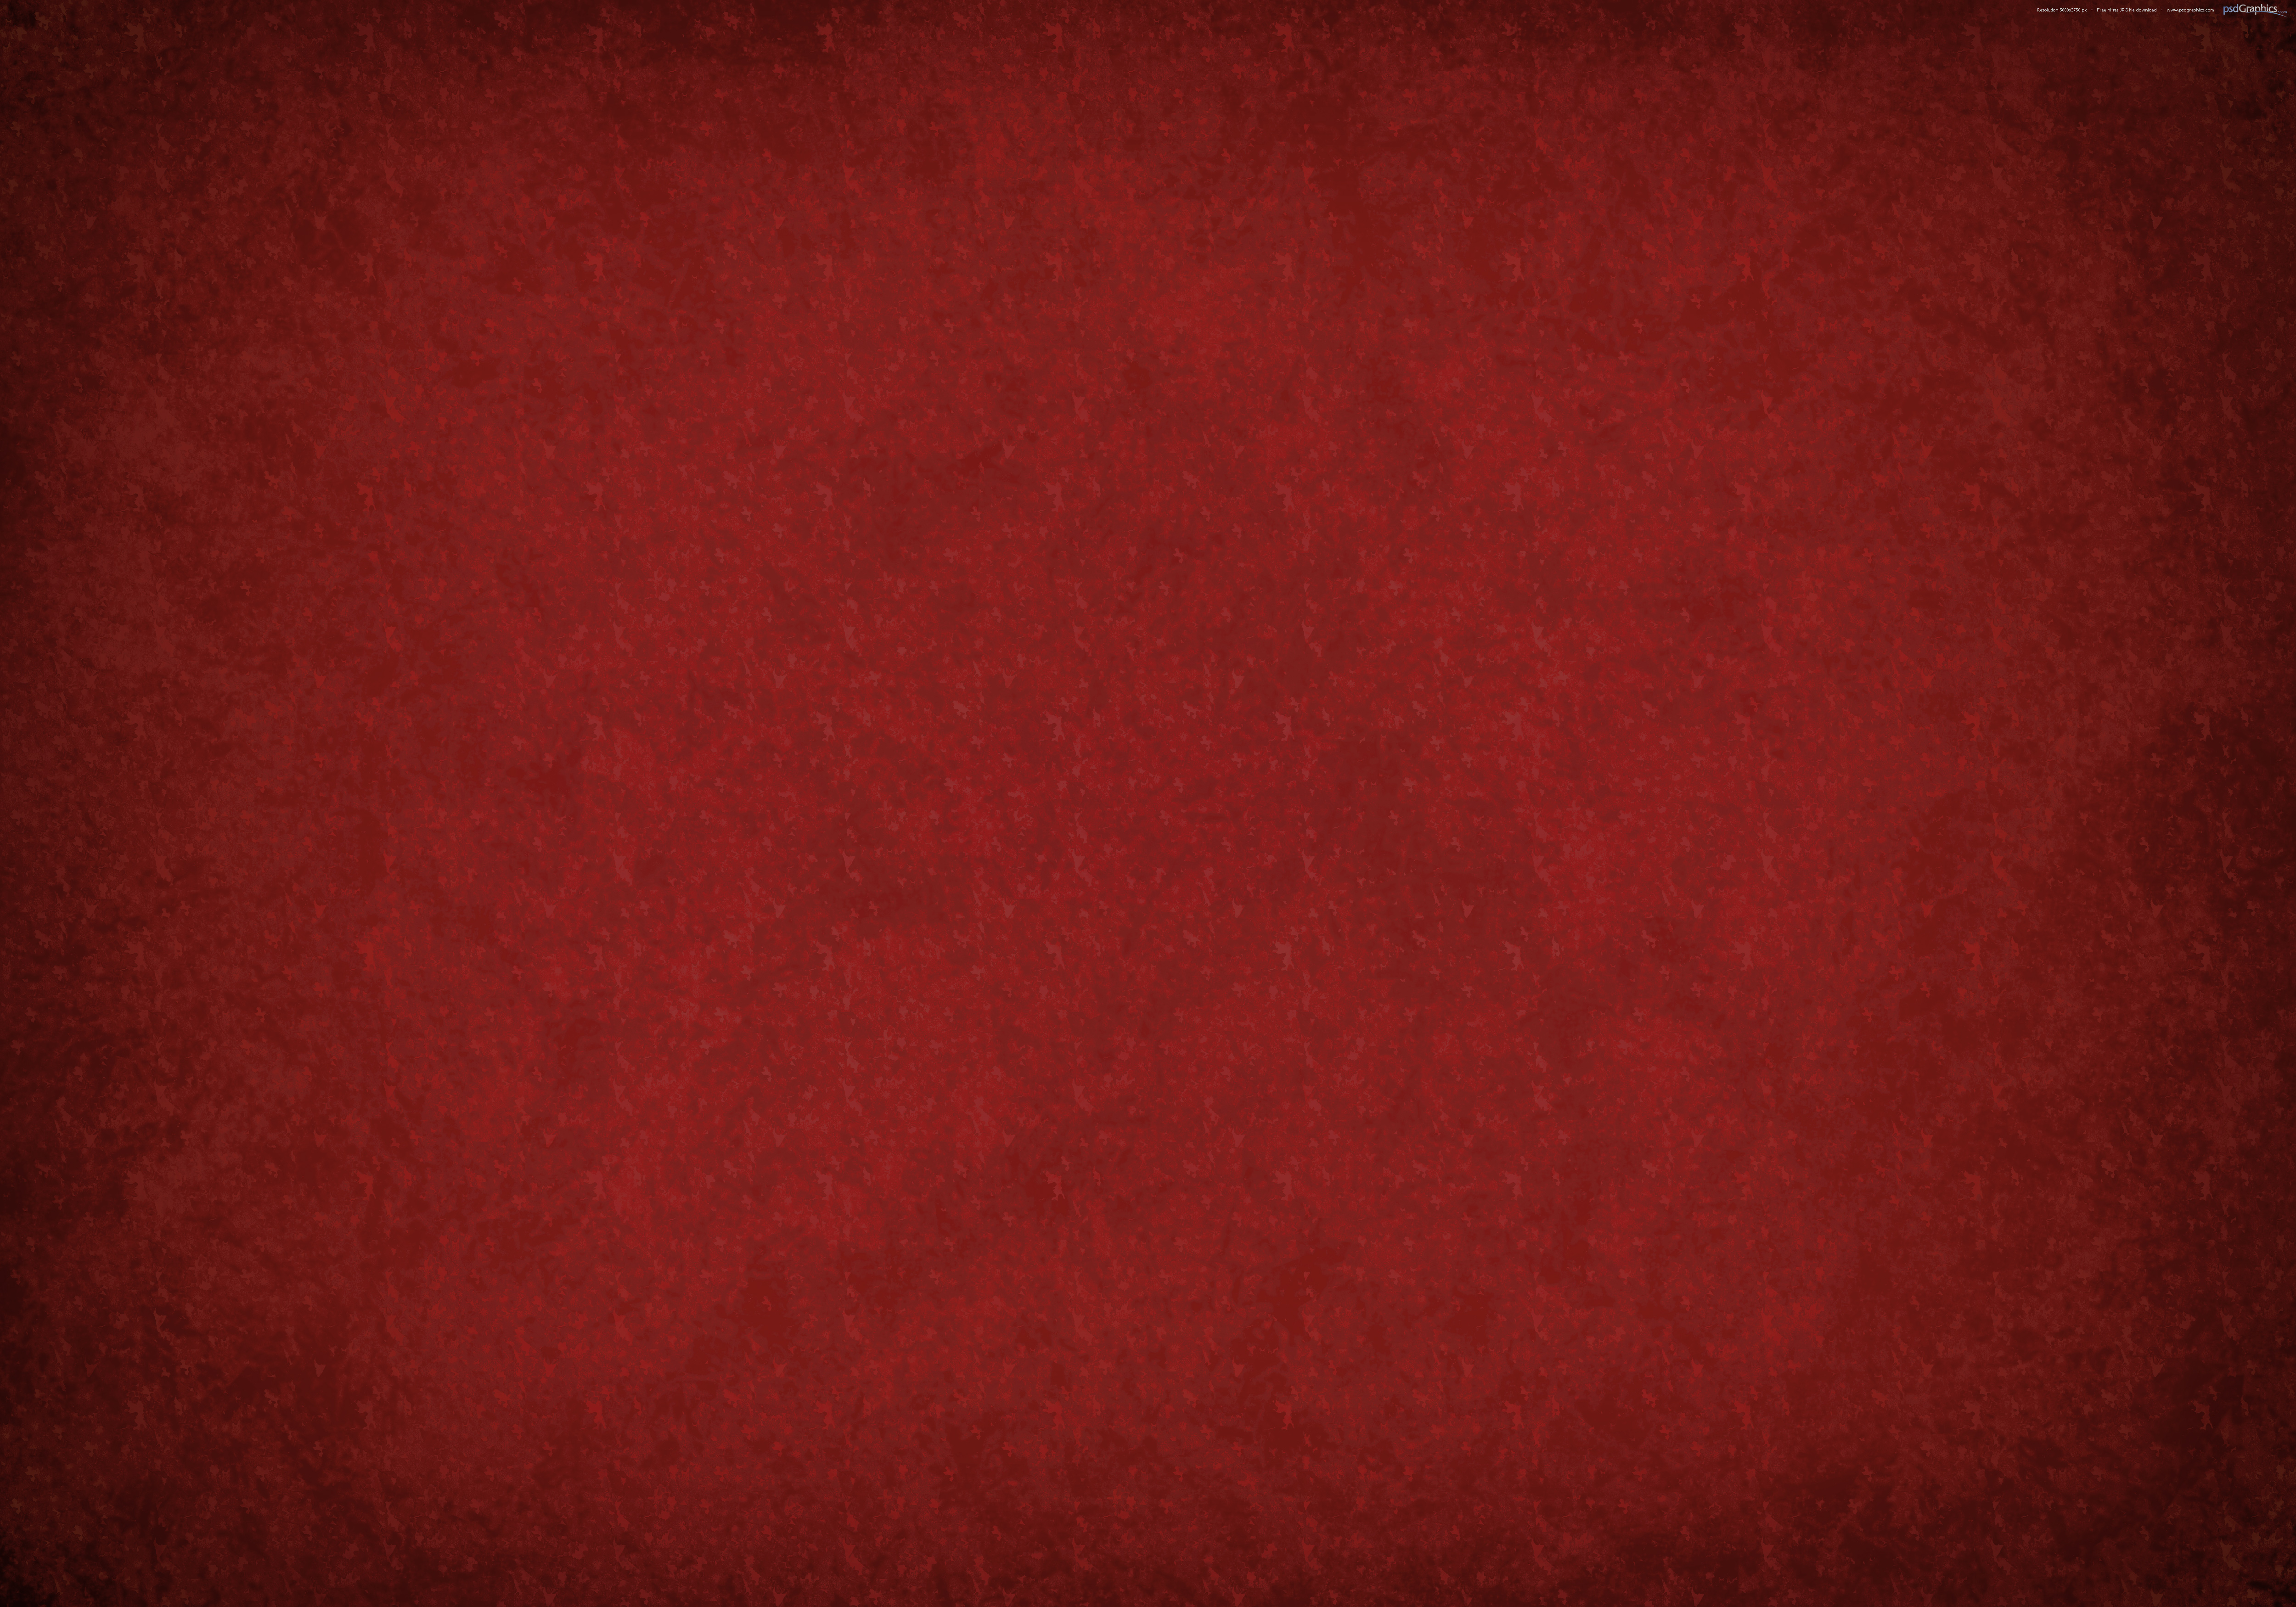 Red Grunge Art Backgrounds